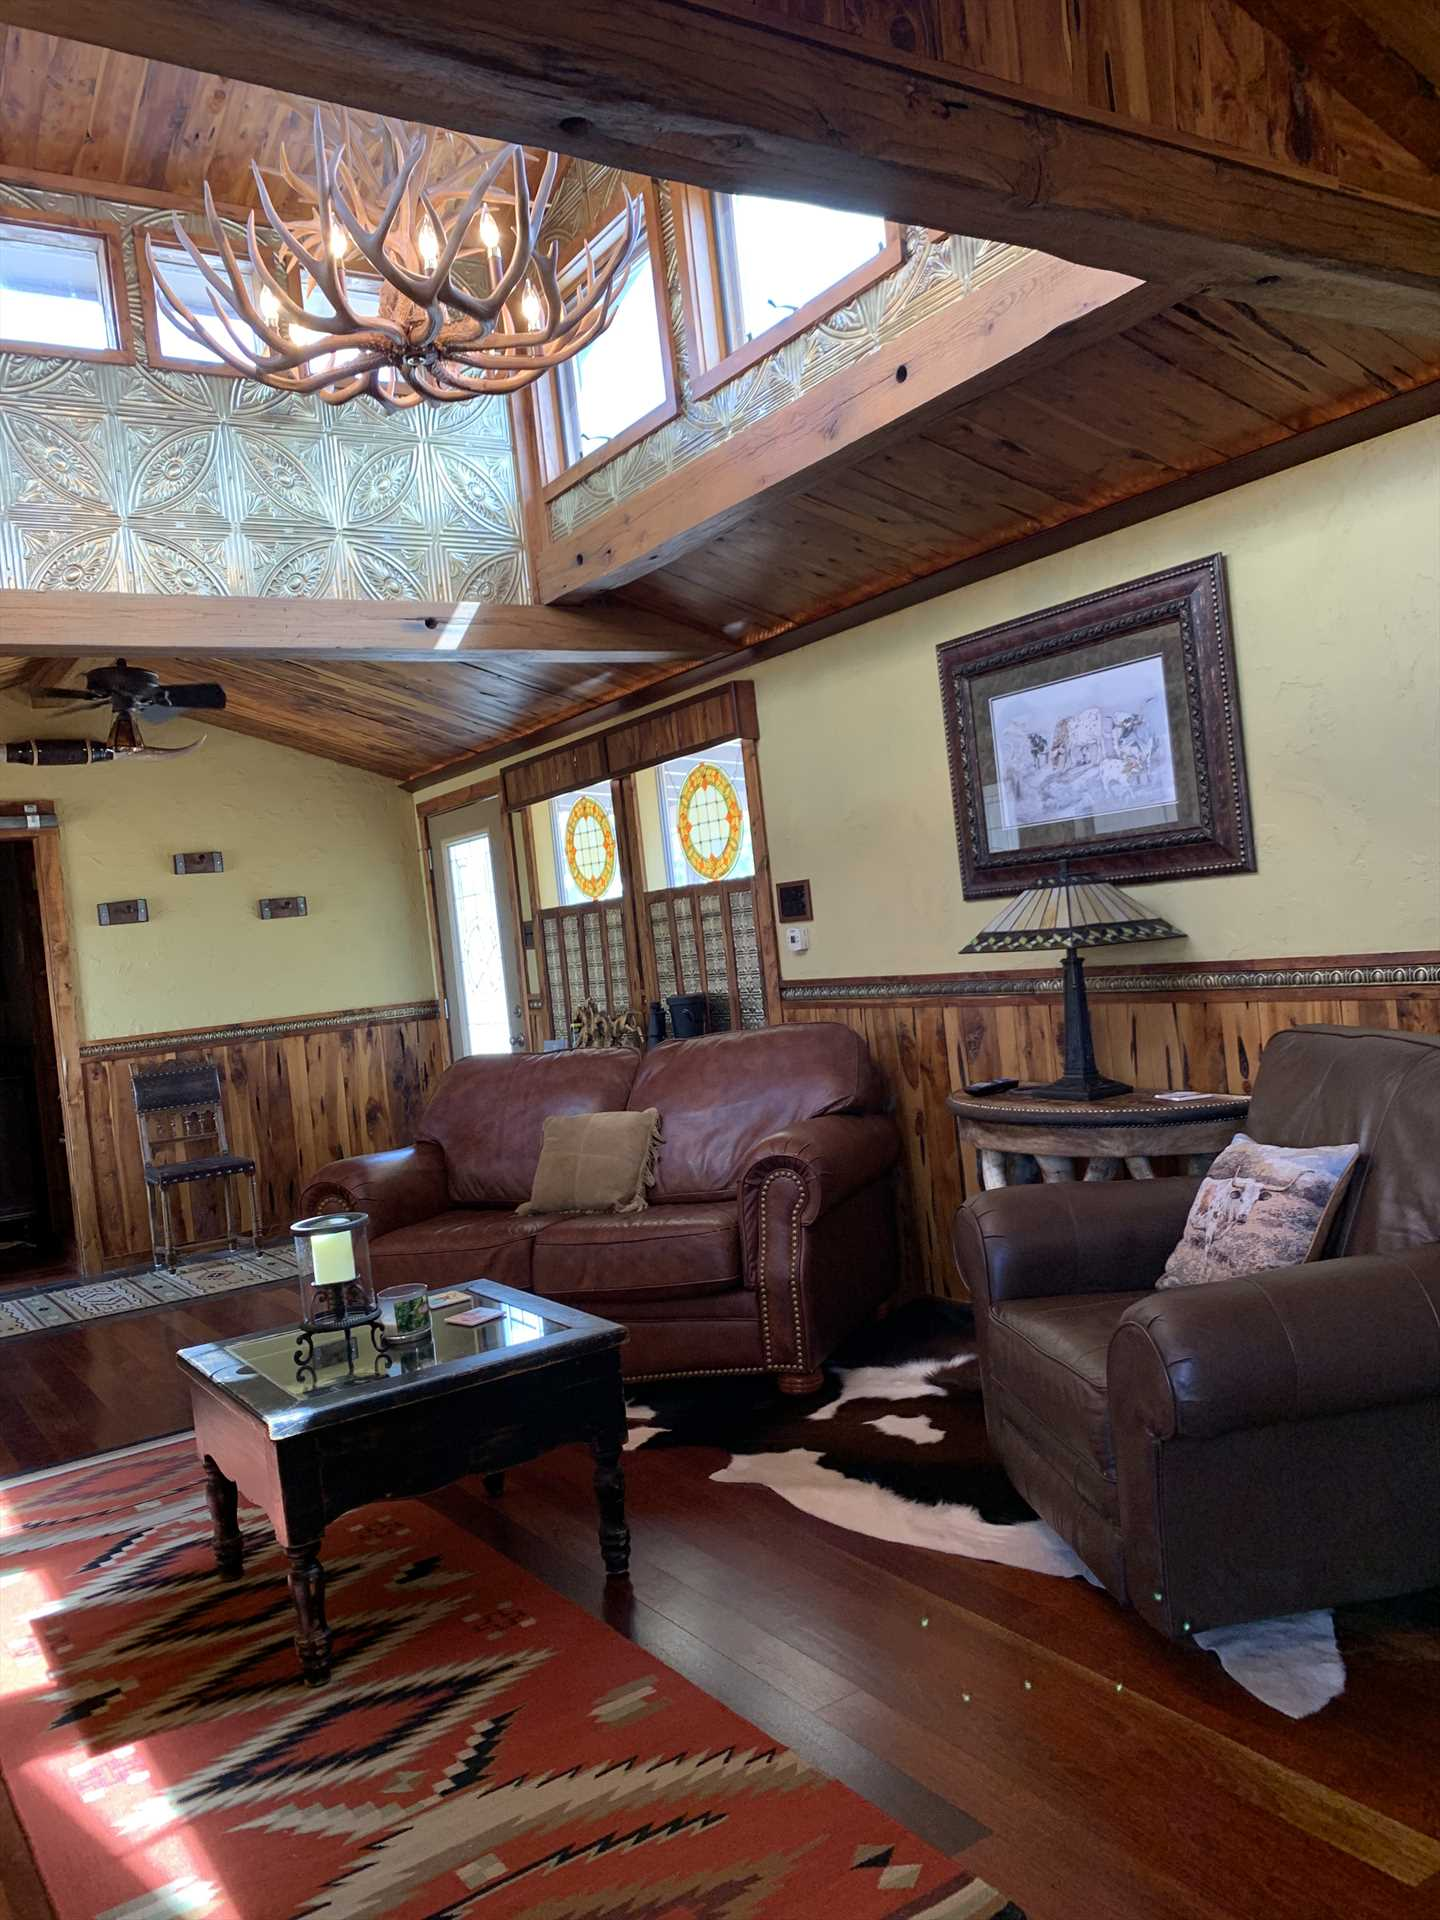 Central air and heat add customized comfort exactly to your liking inside the uniquely Texan Antler Cabin.